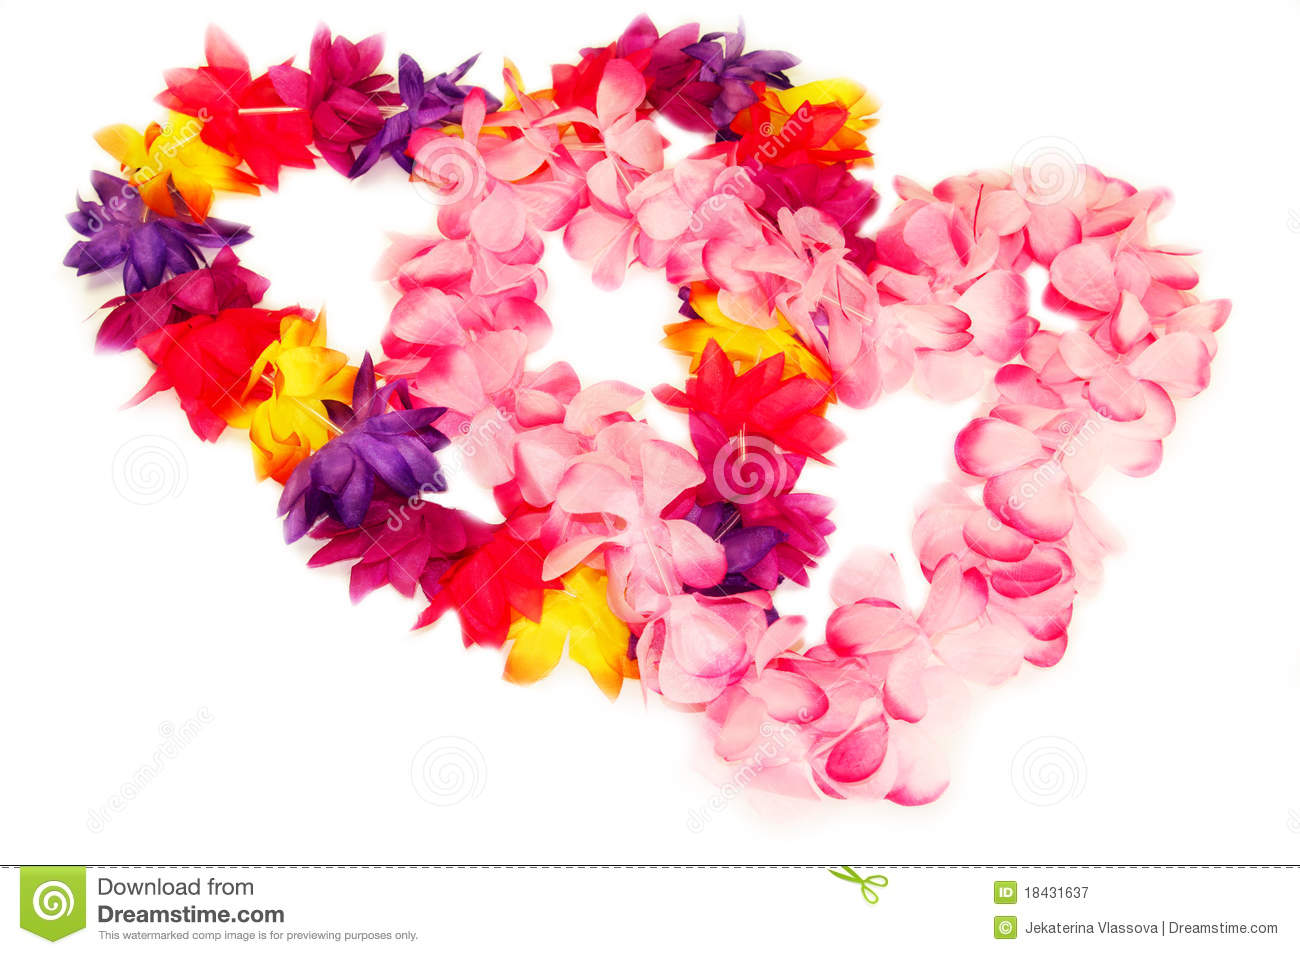 Hawaiian Leis In Heart Shape Stock Image Image Of Petal Hearts